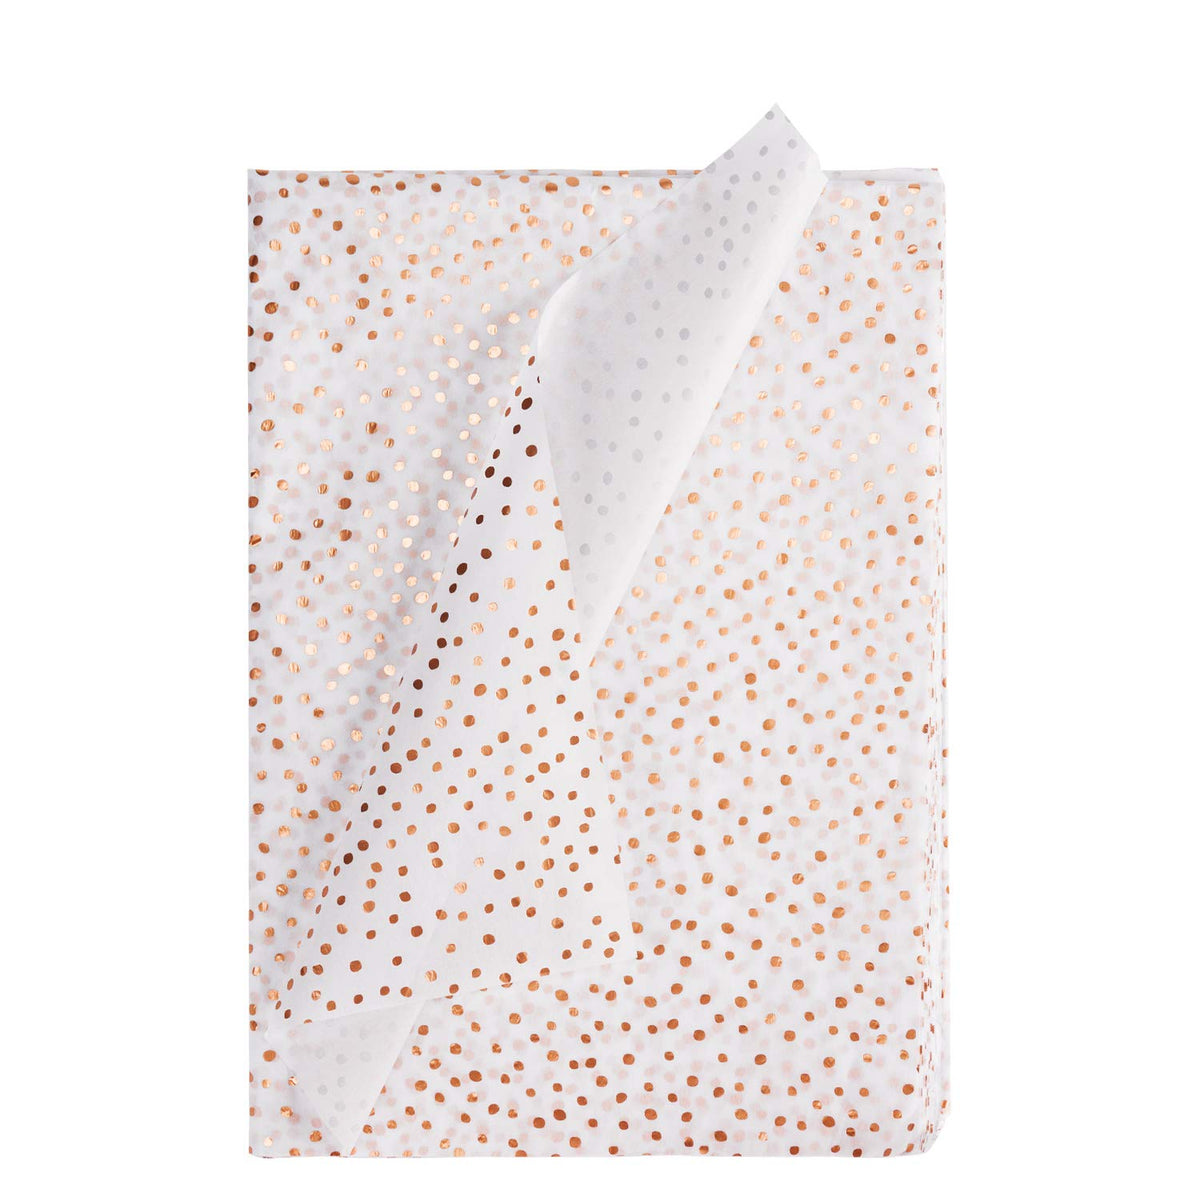 Wrapaholic-Tissue-paper-Rose-Gold-Dot-Printing-24-Sheets-1